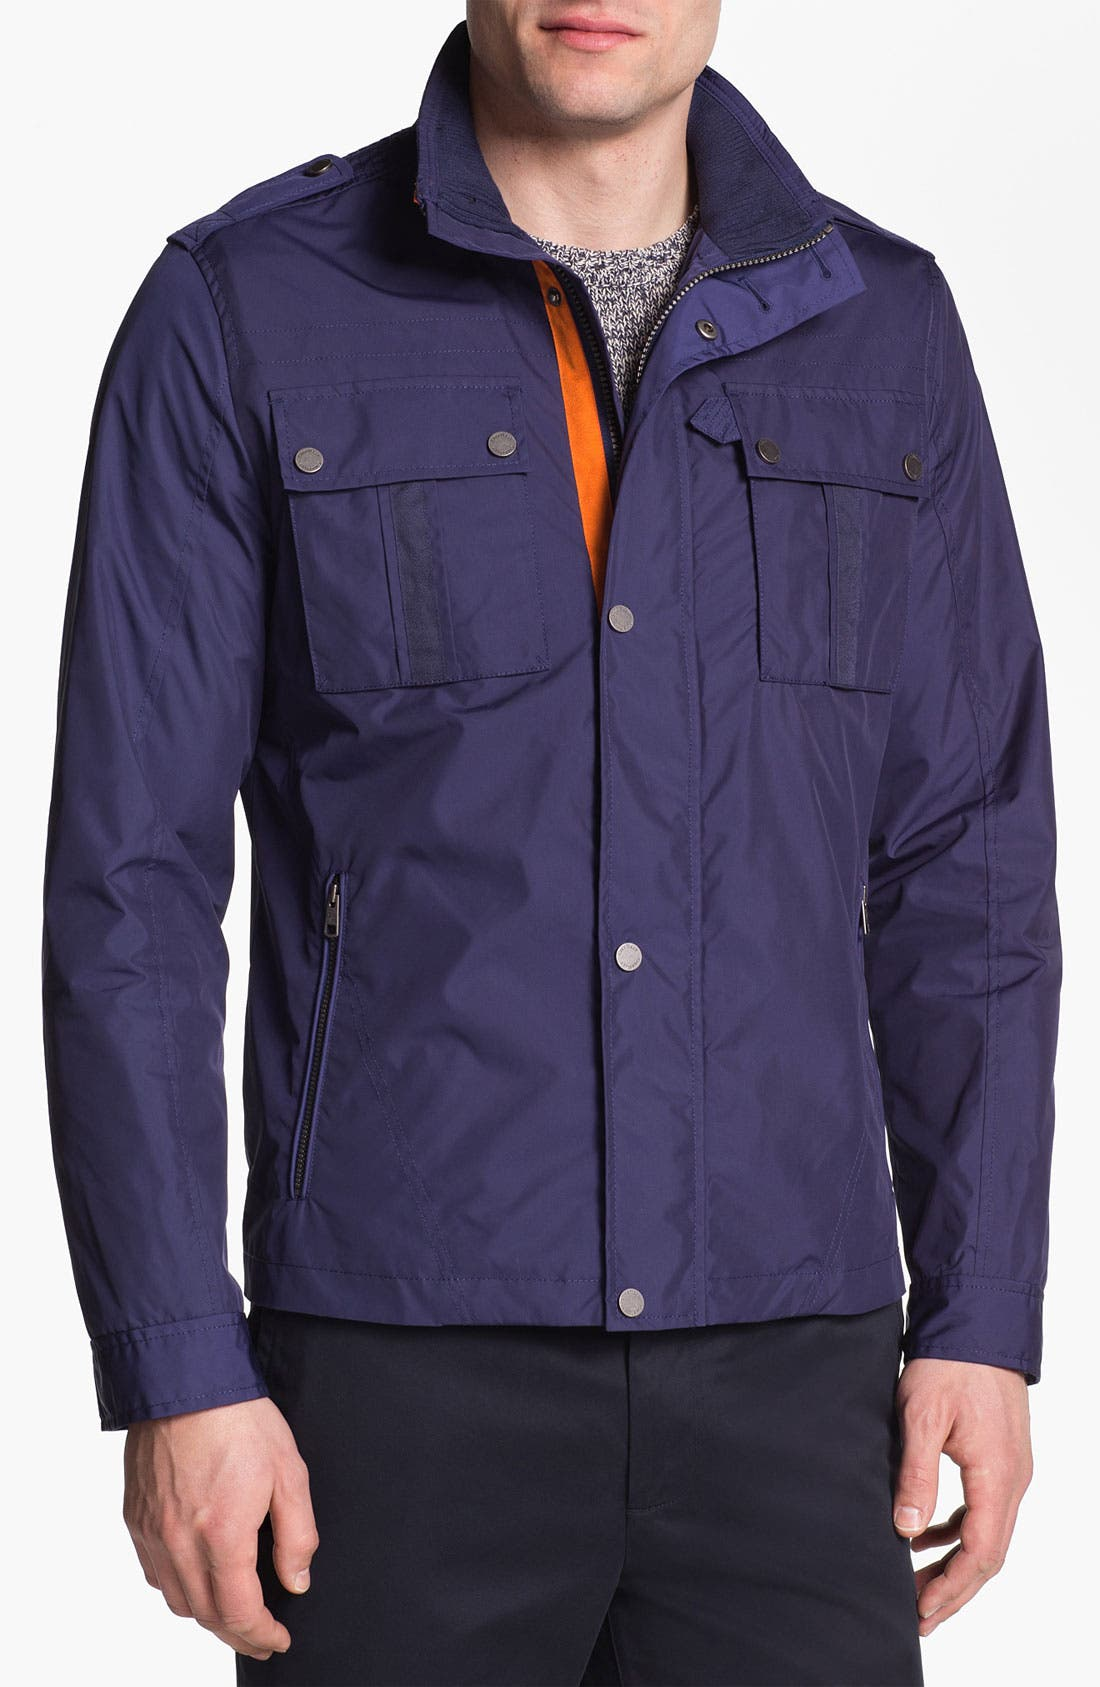 Alternate Image 1 Selected - Cole Haan Water Resistant Jacket